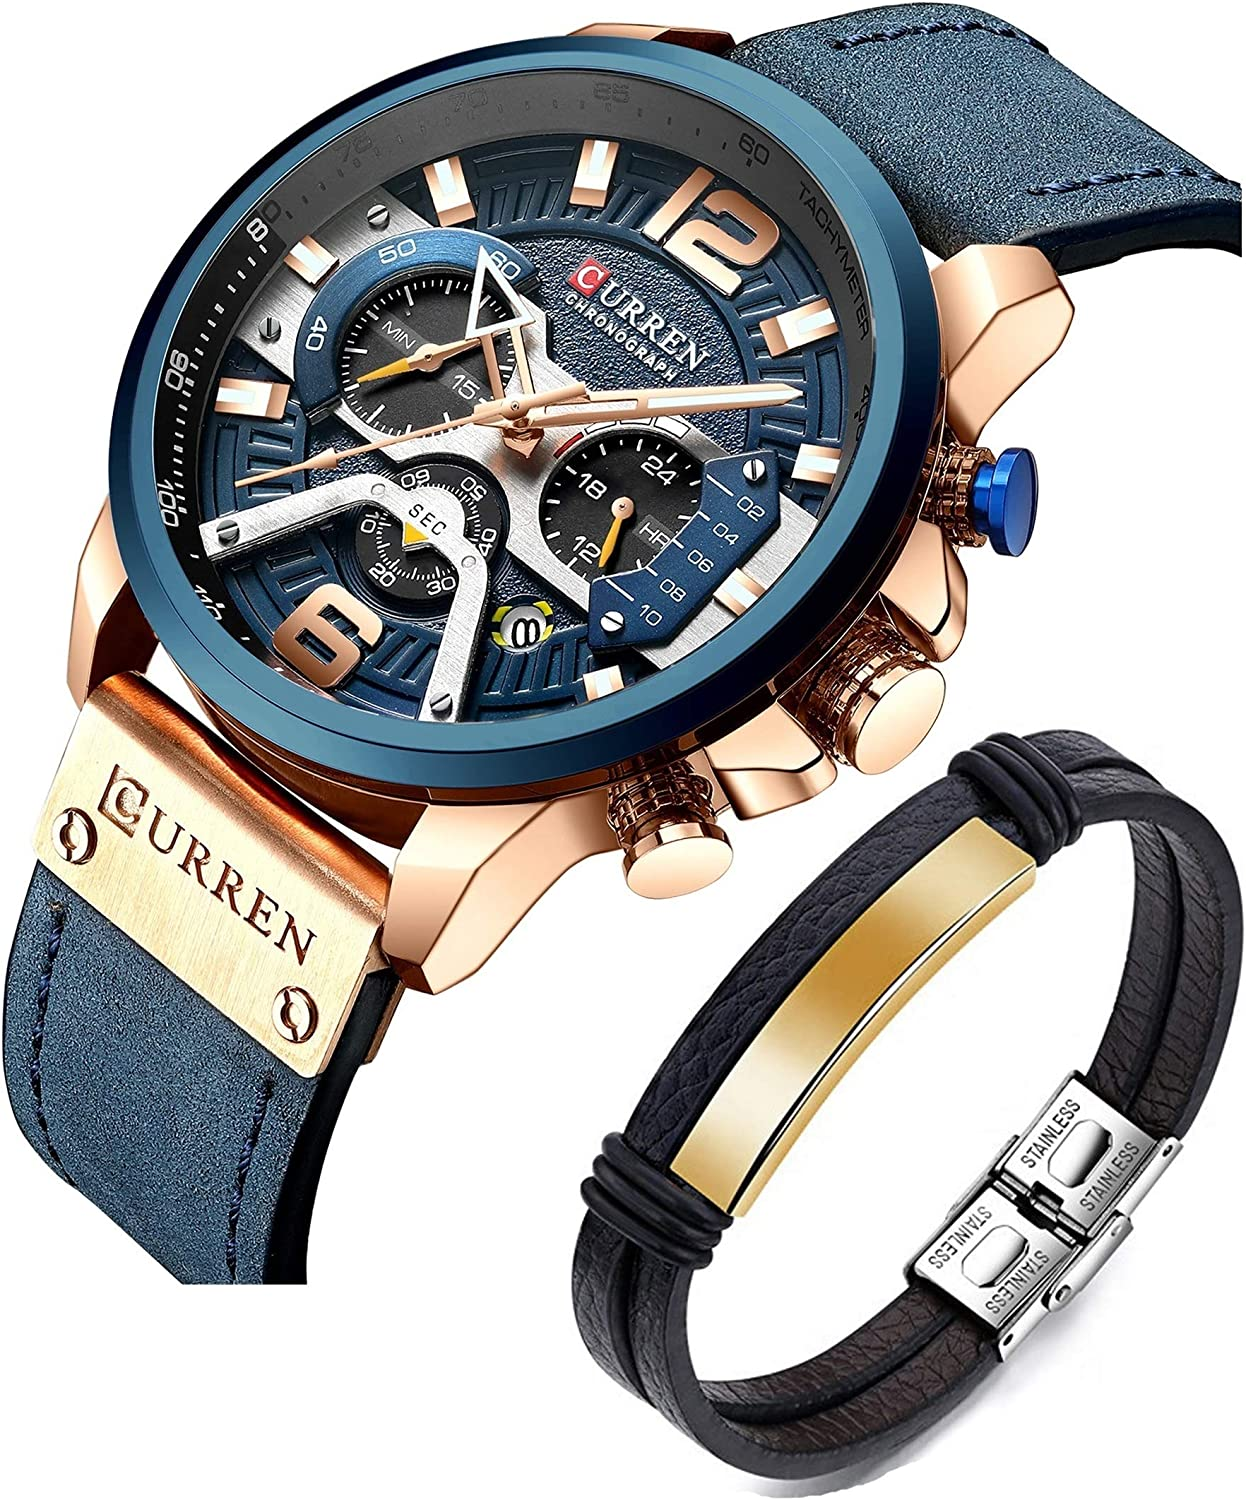 CURREN Men s Watches Quartz Leather Chronograph Watch and Fashion Bracelet Set Luxury Wristwatch Gifts